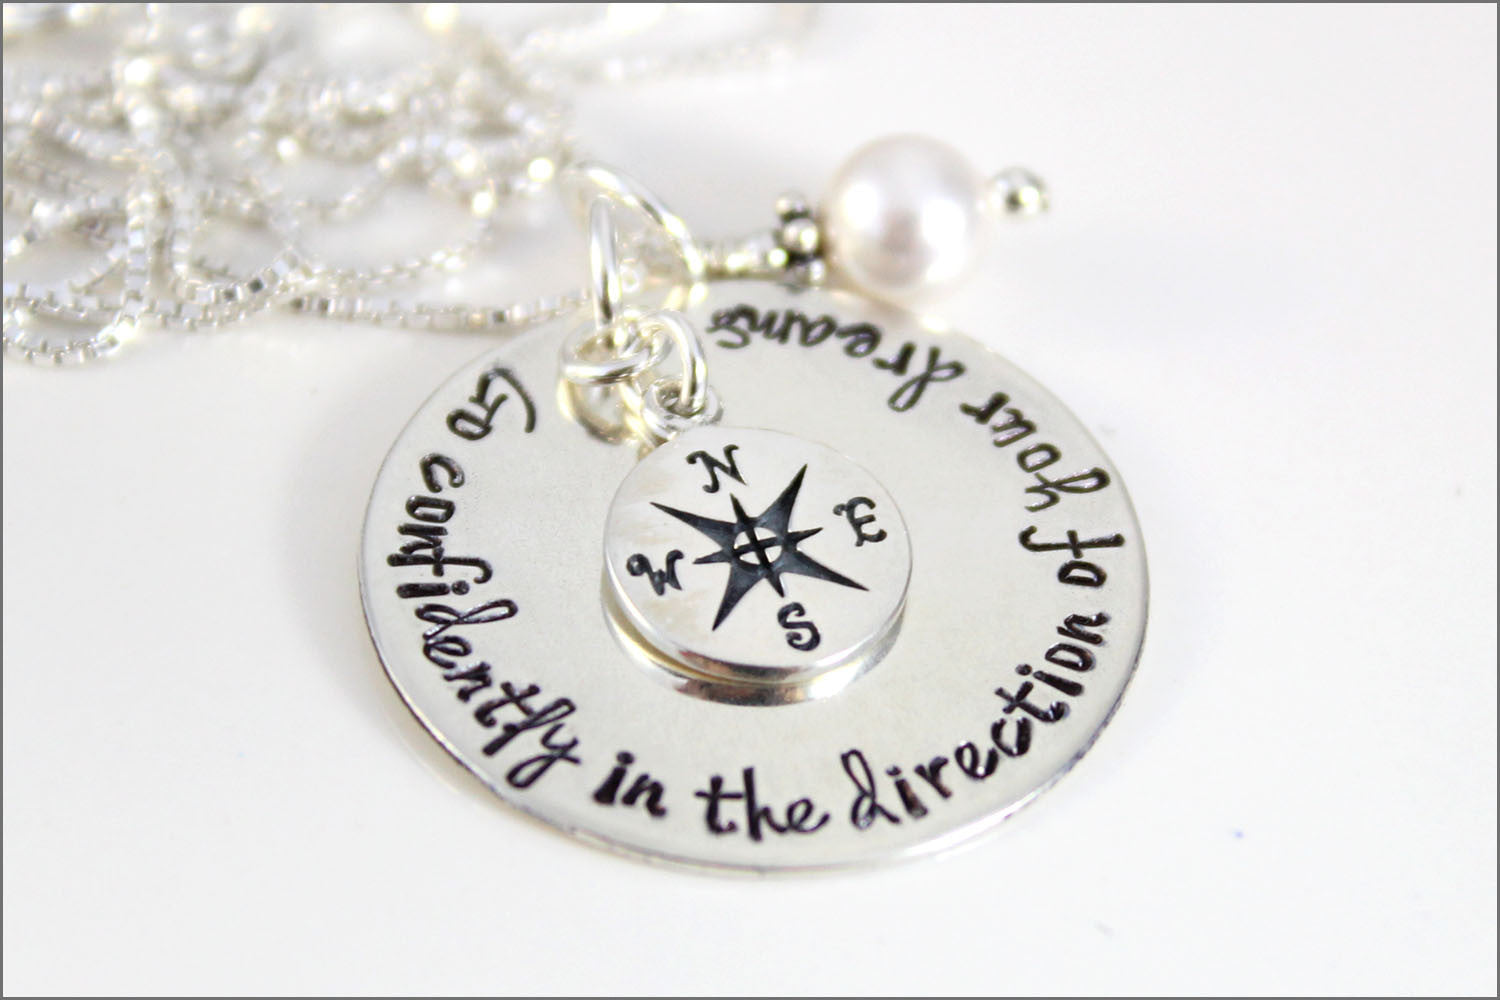 Inspirational Graduation Gift | Go Confidently in the Direction of Your Dreams, Sterling Silver Compass Necklace, Graduation Necklace